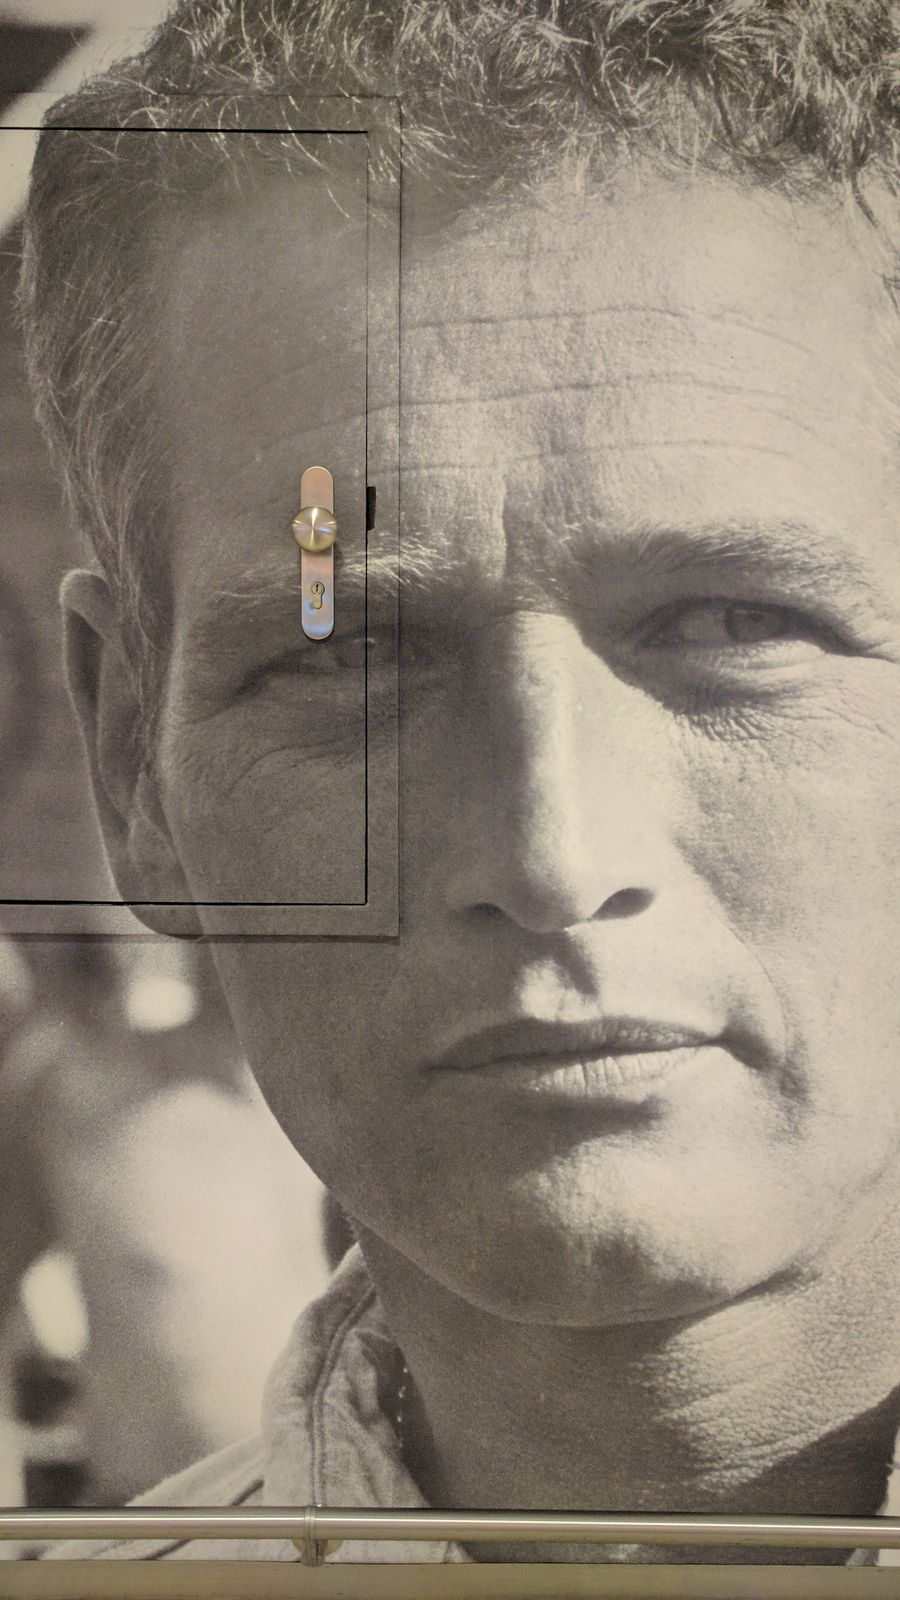 One Person Interior Design Interior Views Interior Style Famous People Paul Newman Icon Moviestar Movie Star HERO Idol Bad Boy  Hollywood Filmstar Cool